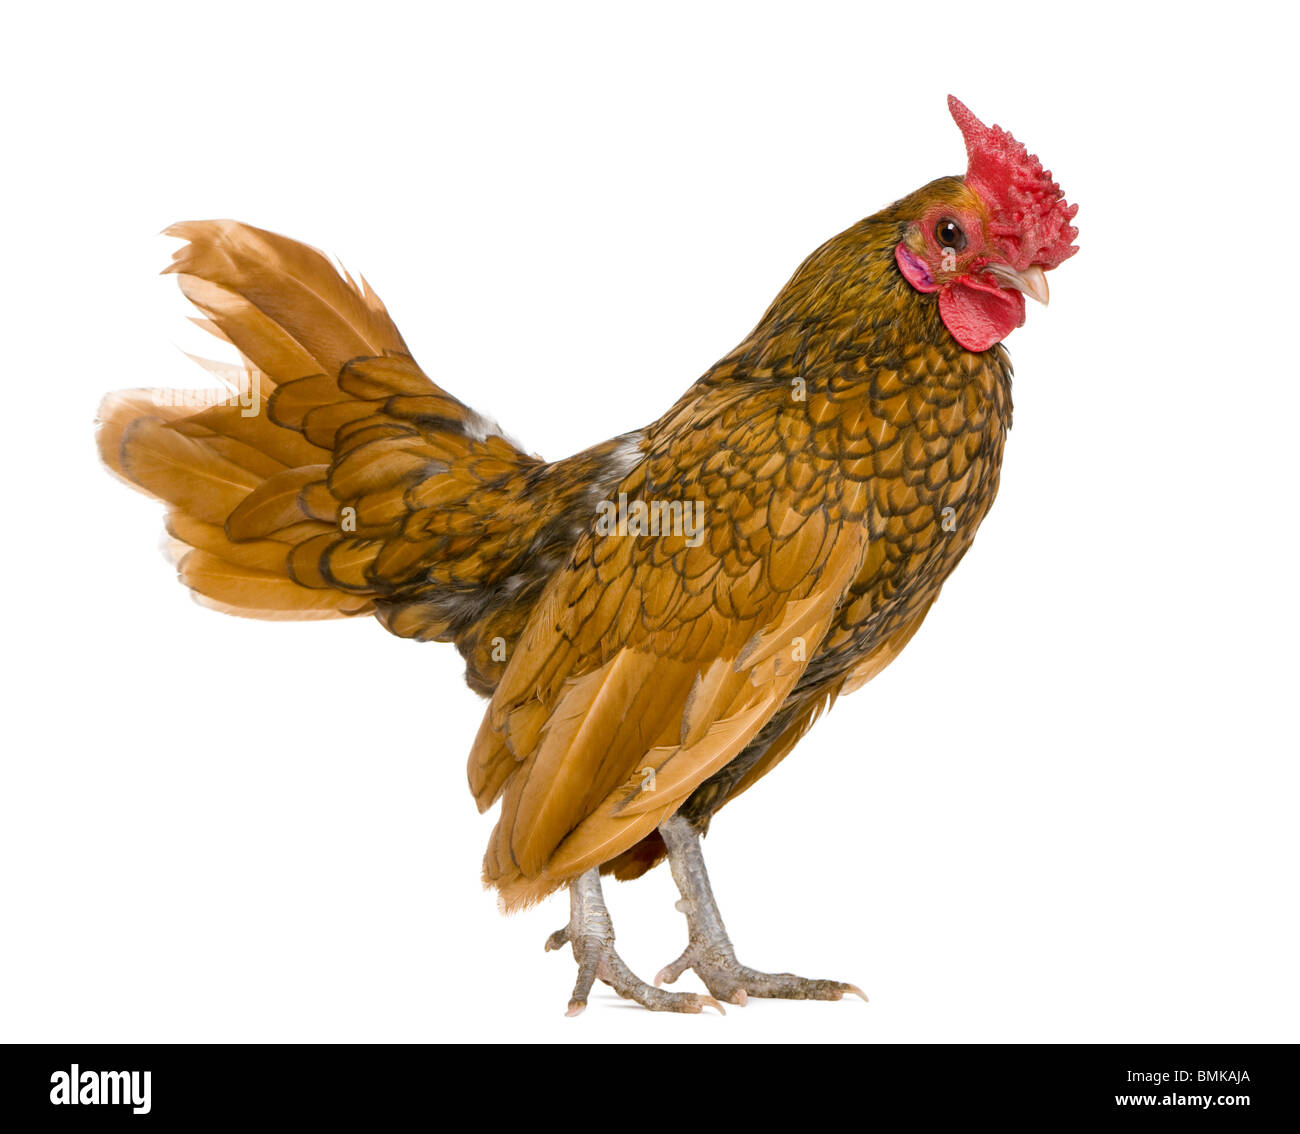 Golden Sebright rooster, 1 year old, standing in front of white background - Stock Image